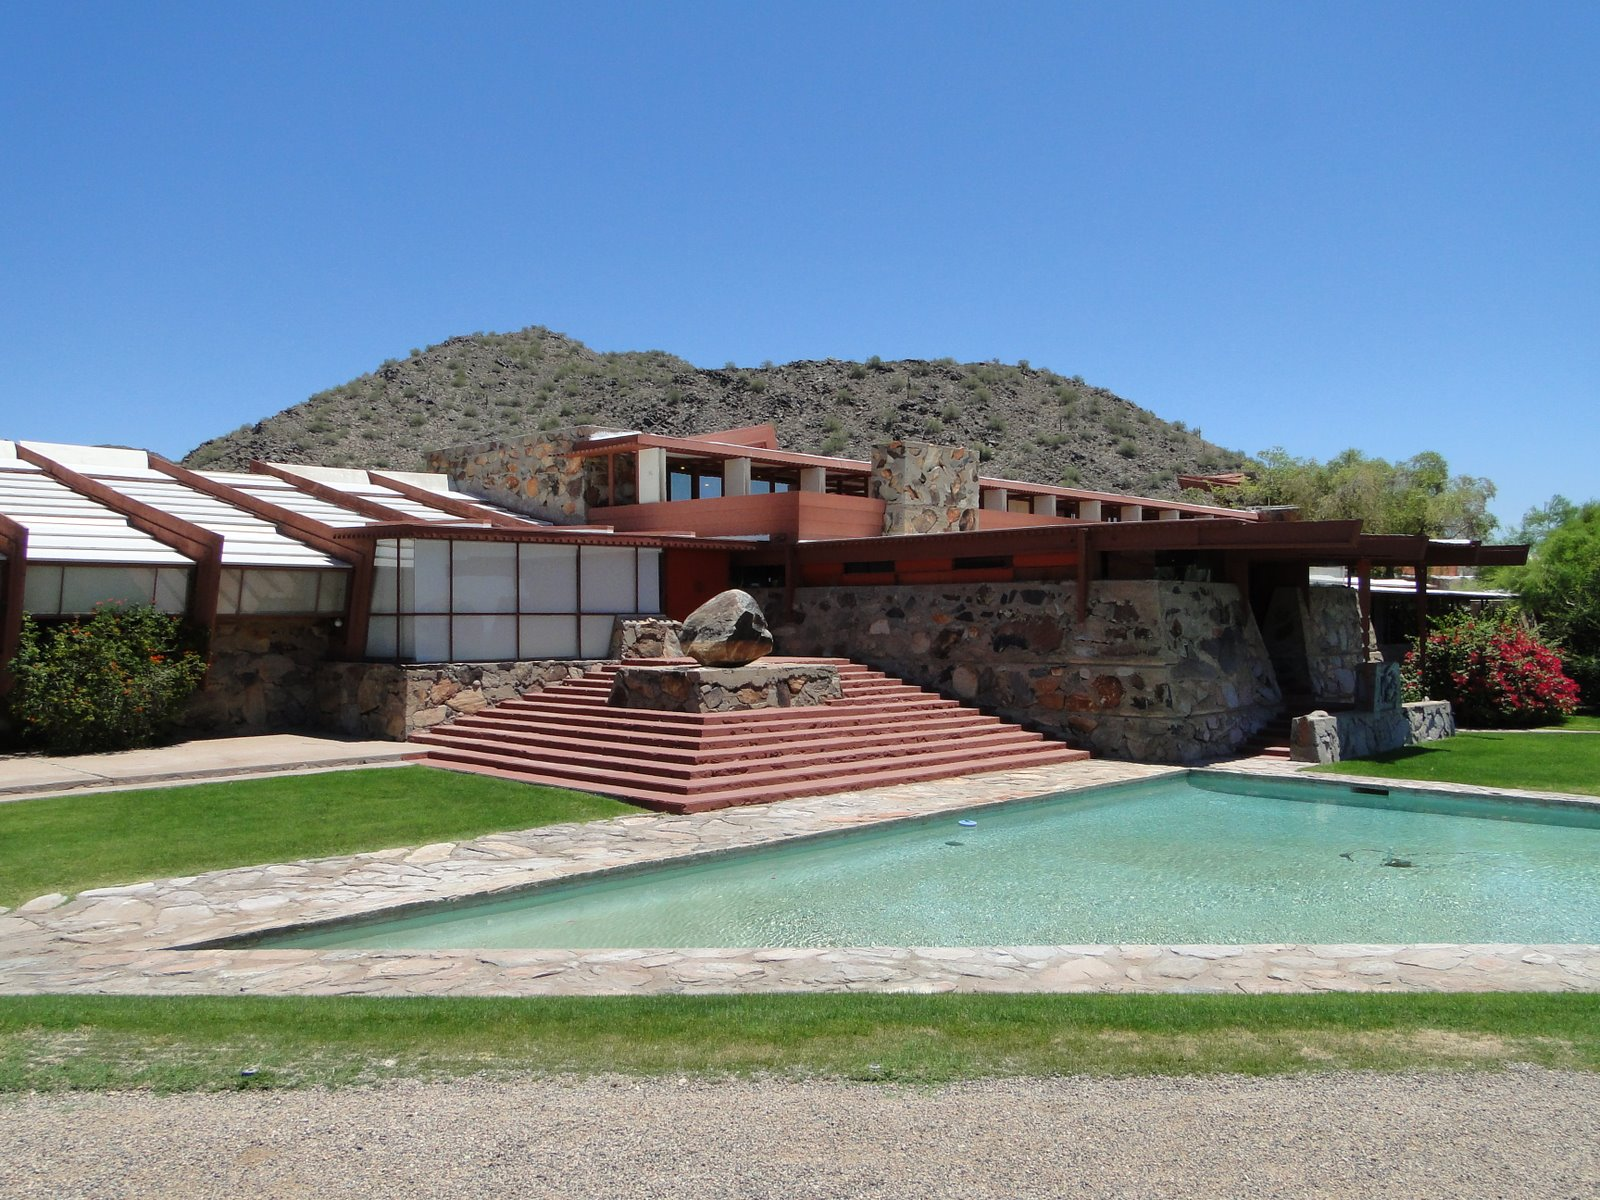 Taliesin West in Scottsdale – Architekt Frank Lloyd Wright